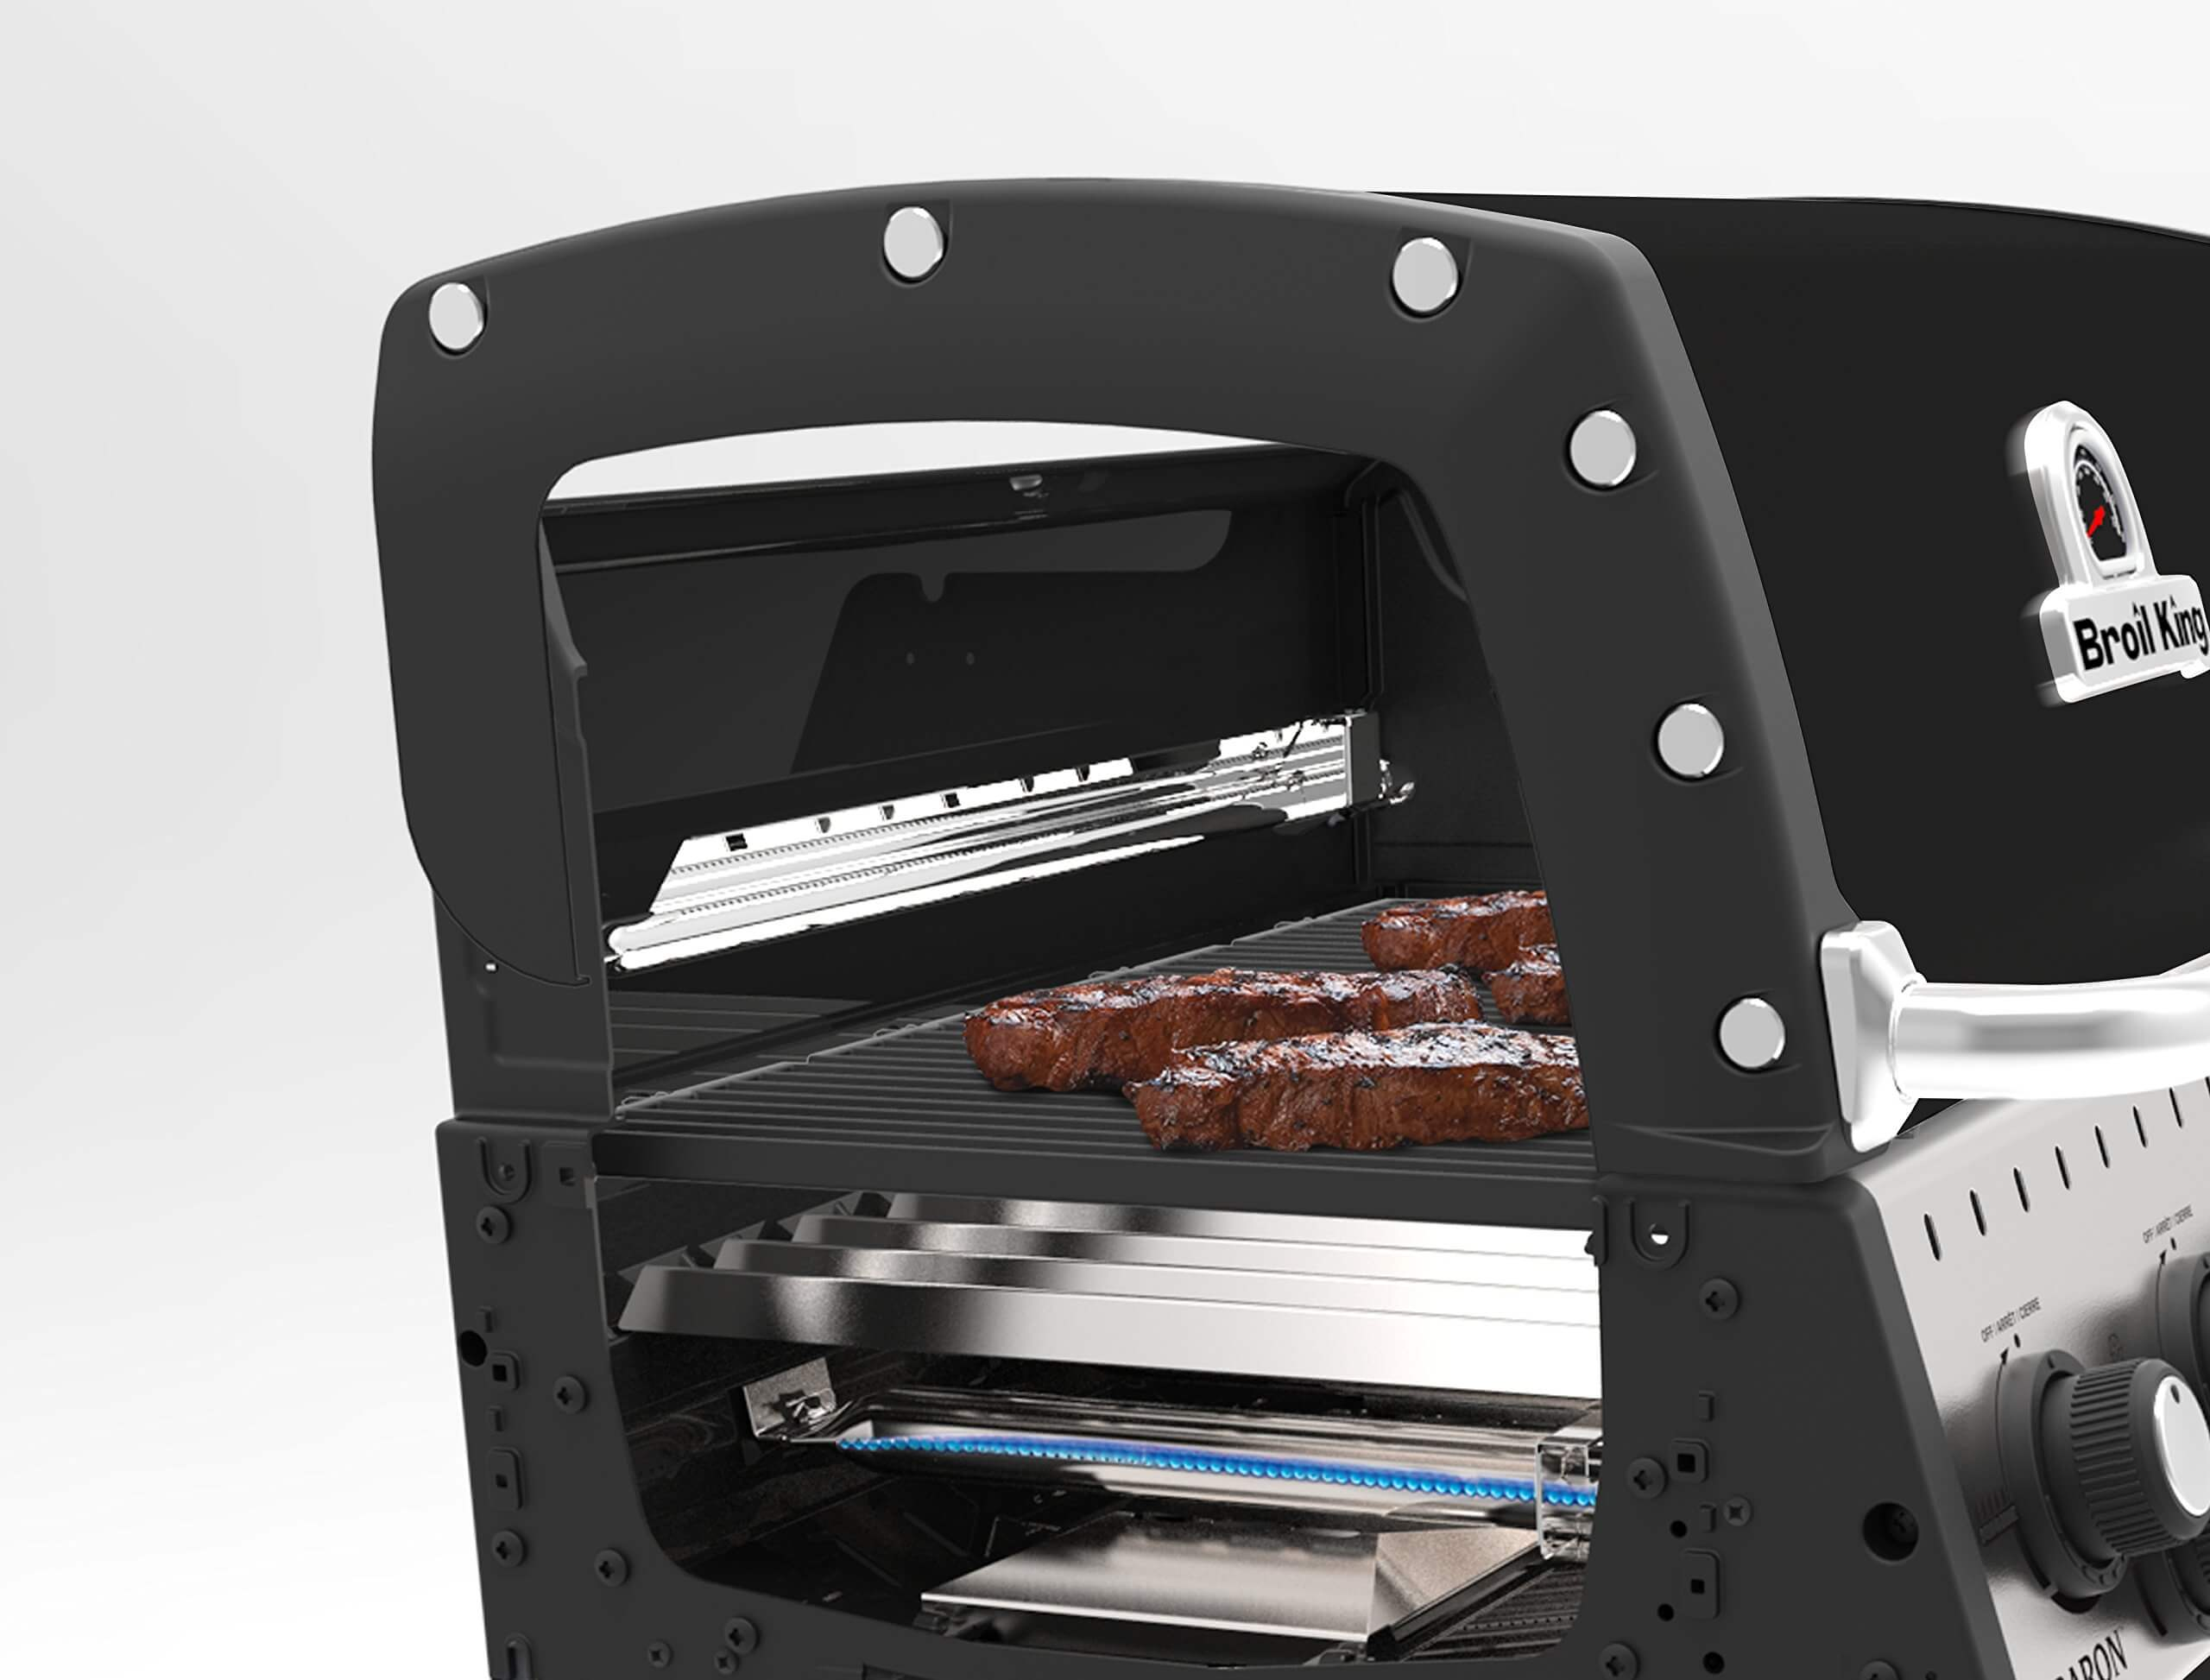 grilling support with broil king grills parts, broil king grill reviews, outdoor gas grill, best small grill